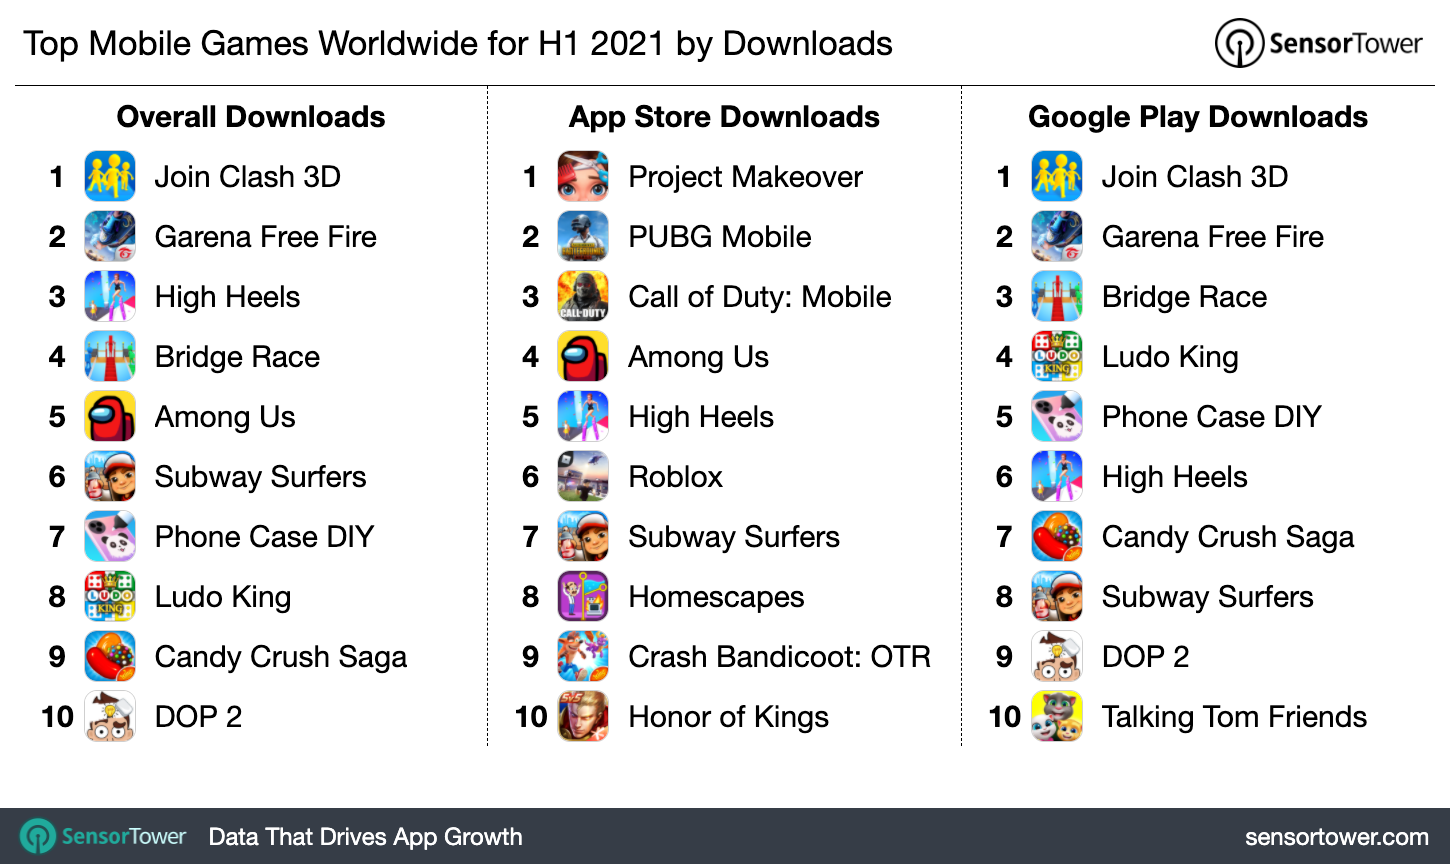 1H 2021 Most Downloaded Games Worldwide